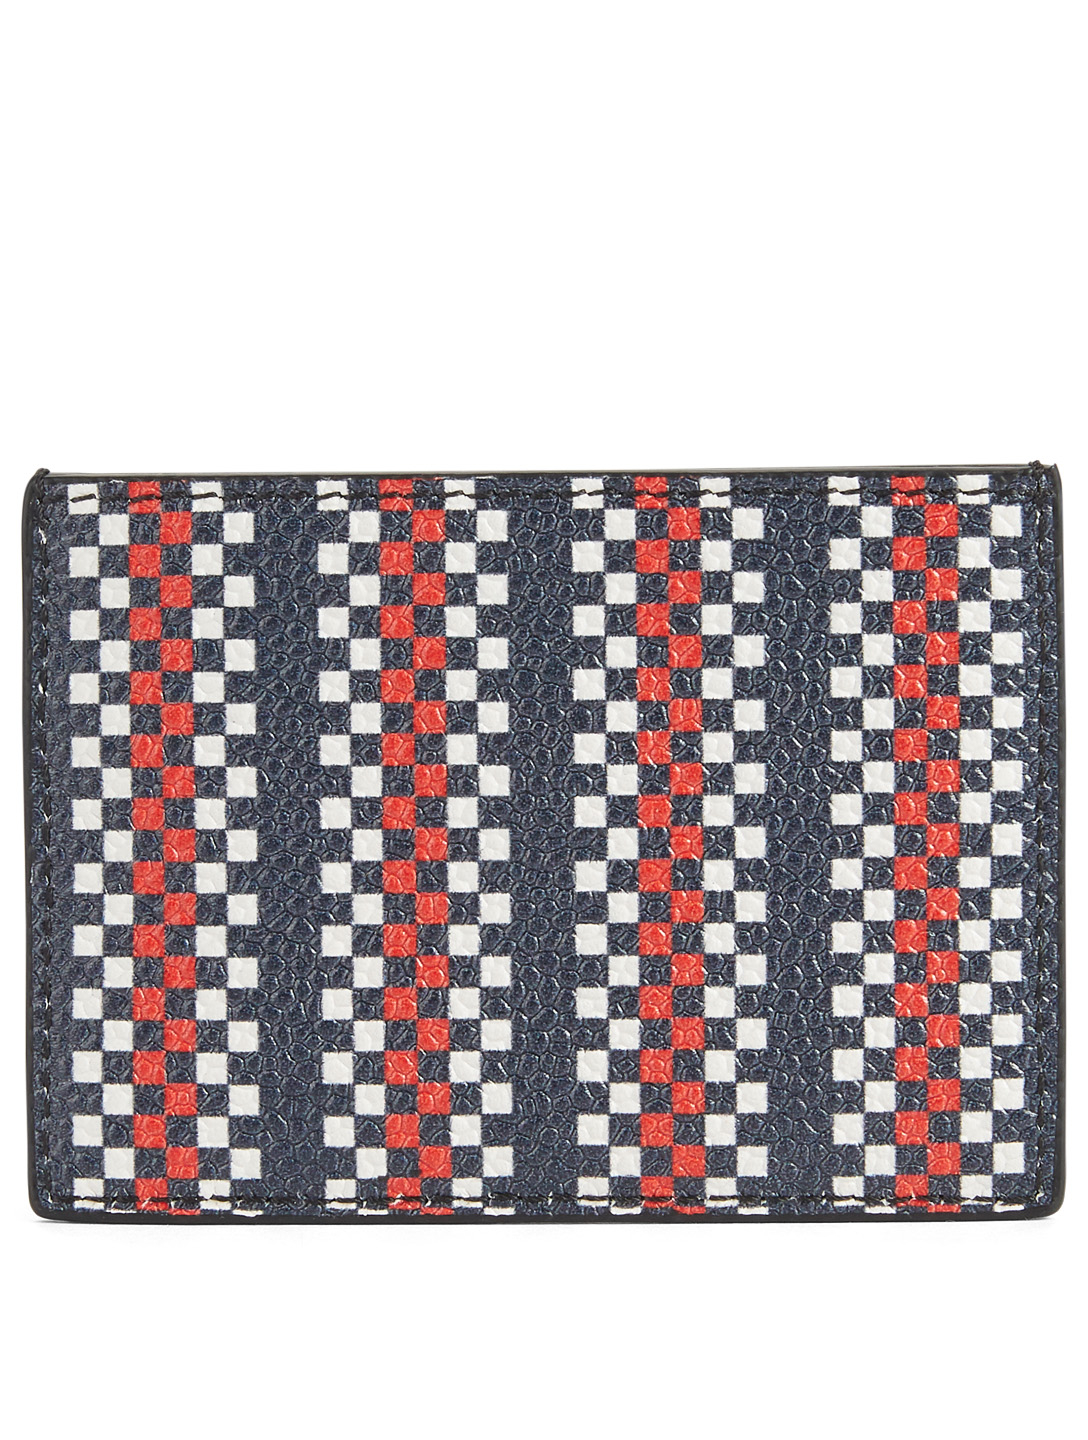 THOM BROWNE Leather Card Holder In Plaid Print Men's Multi